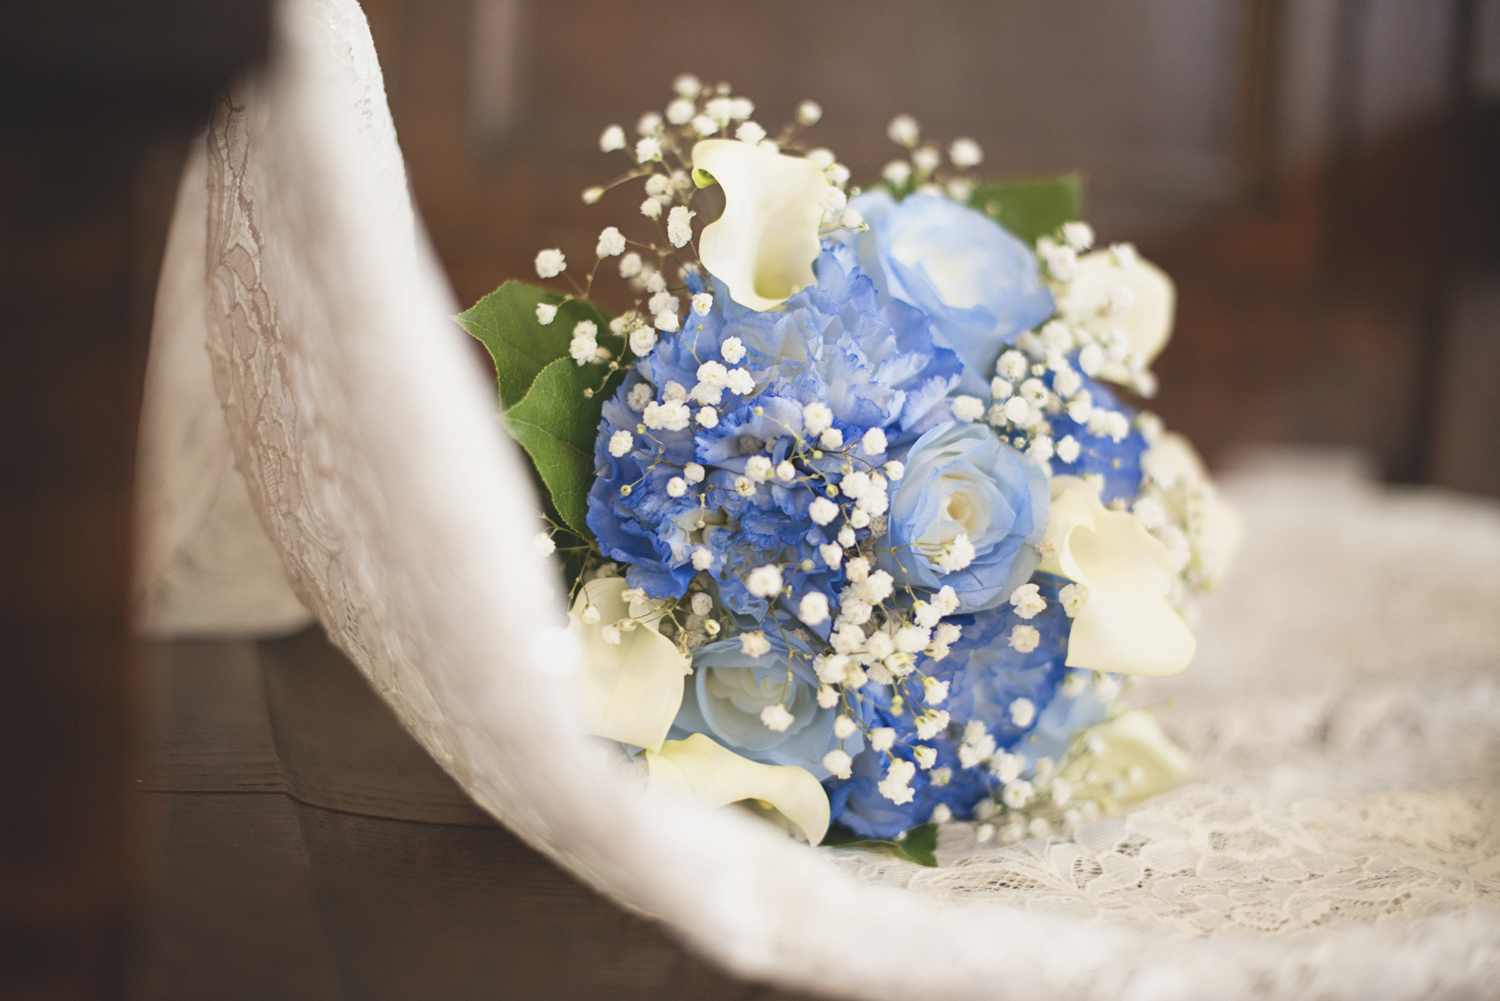 Wedding bouquet with white calla lilies, blue carnations, and baby's breath